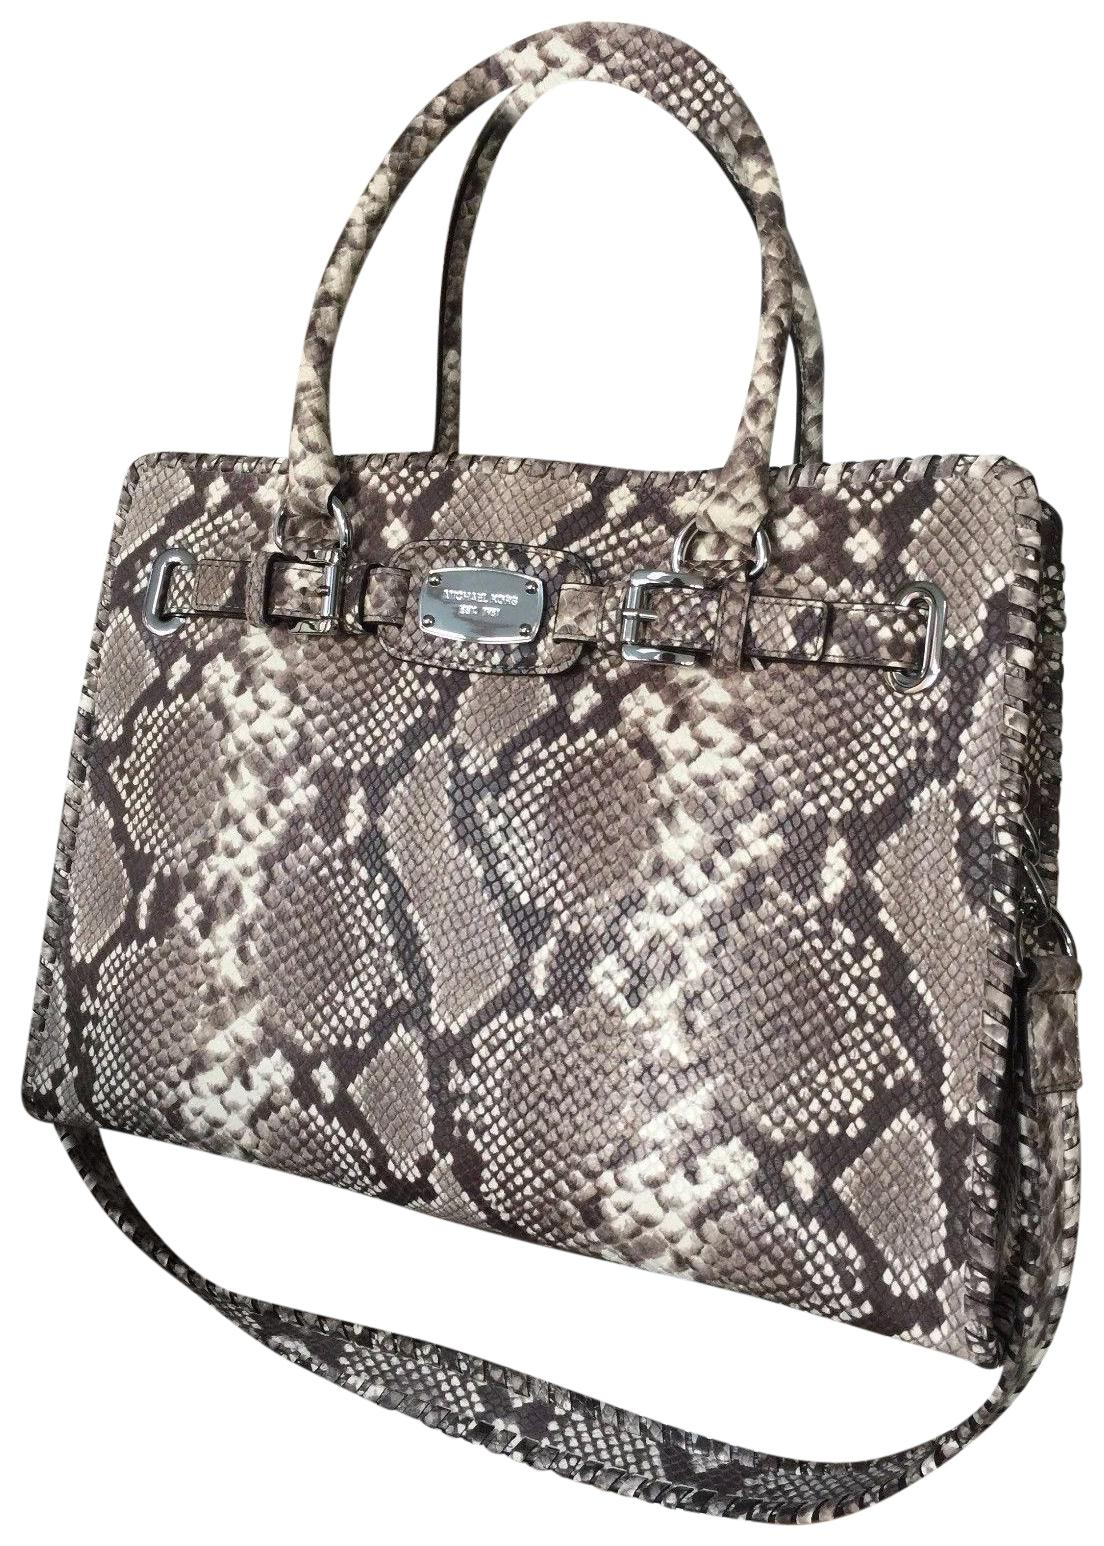 f852b0b7288a ... ireland michael kors tech large animal print embossed tote in snakeskin  5b060 77f53